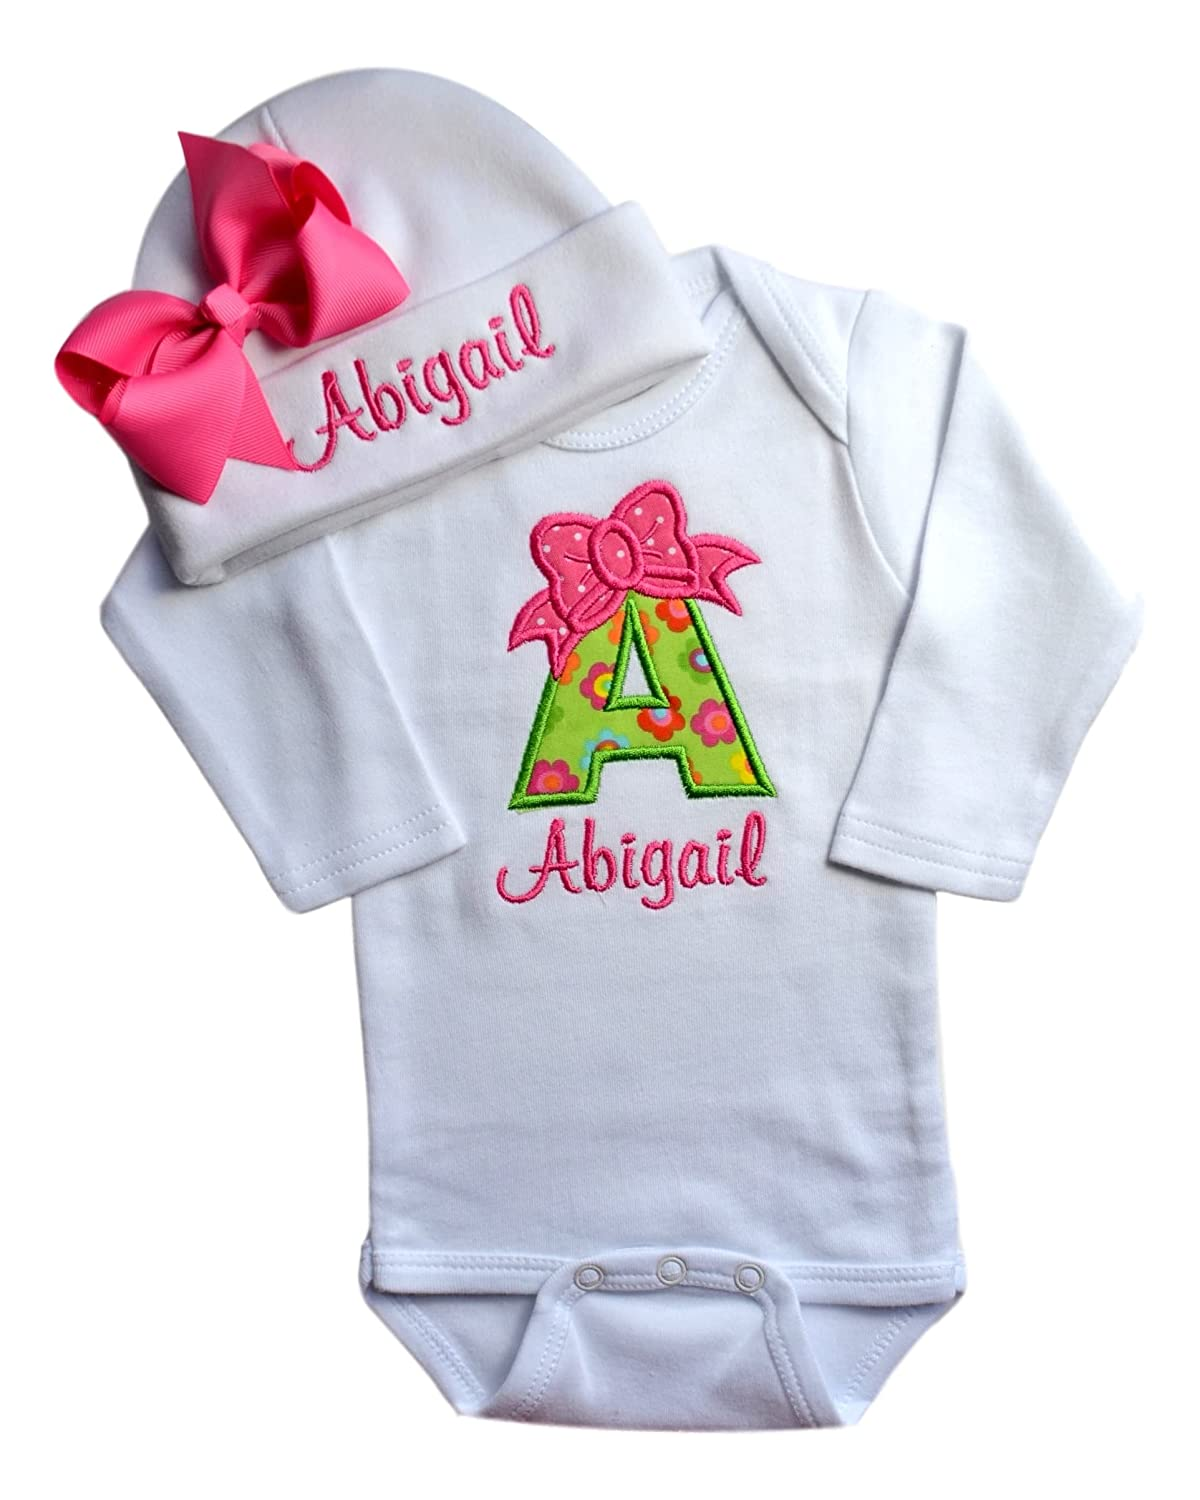 44a2d7e6e6e 100% Ringspun Combed Interlock Cotton Long Sleeve Bodysuit Onesie with  Matching Grosgrain Bow Hat Proudly Embroidered in Massachusetts